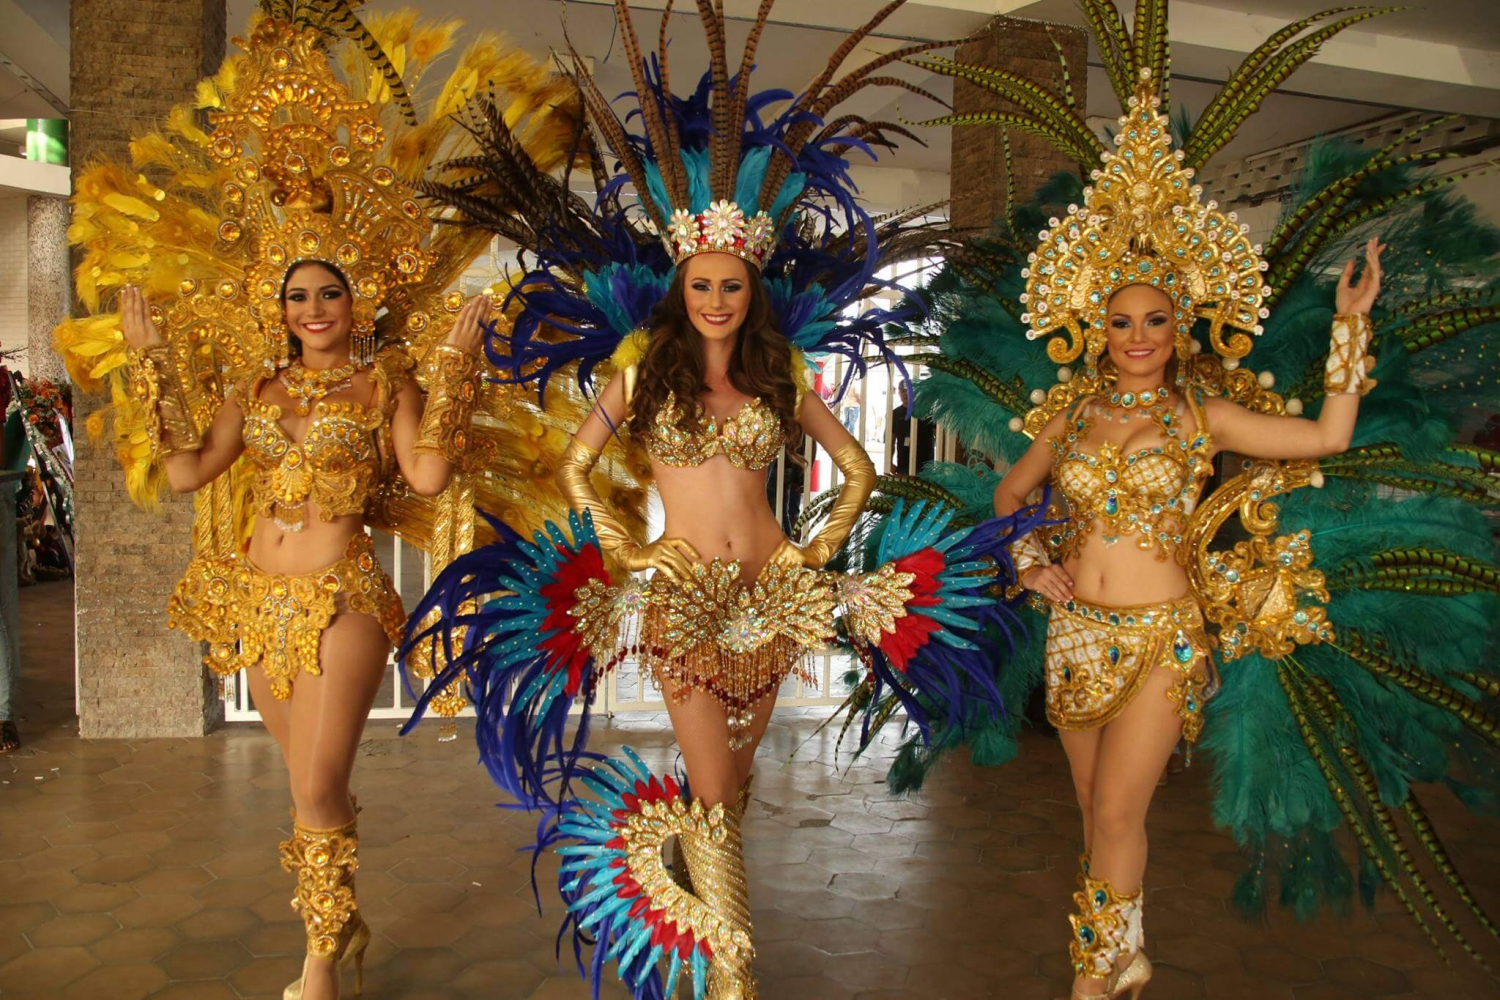 Valerie Falcon was elected Queen of the Carnival Panama